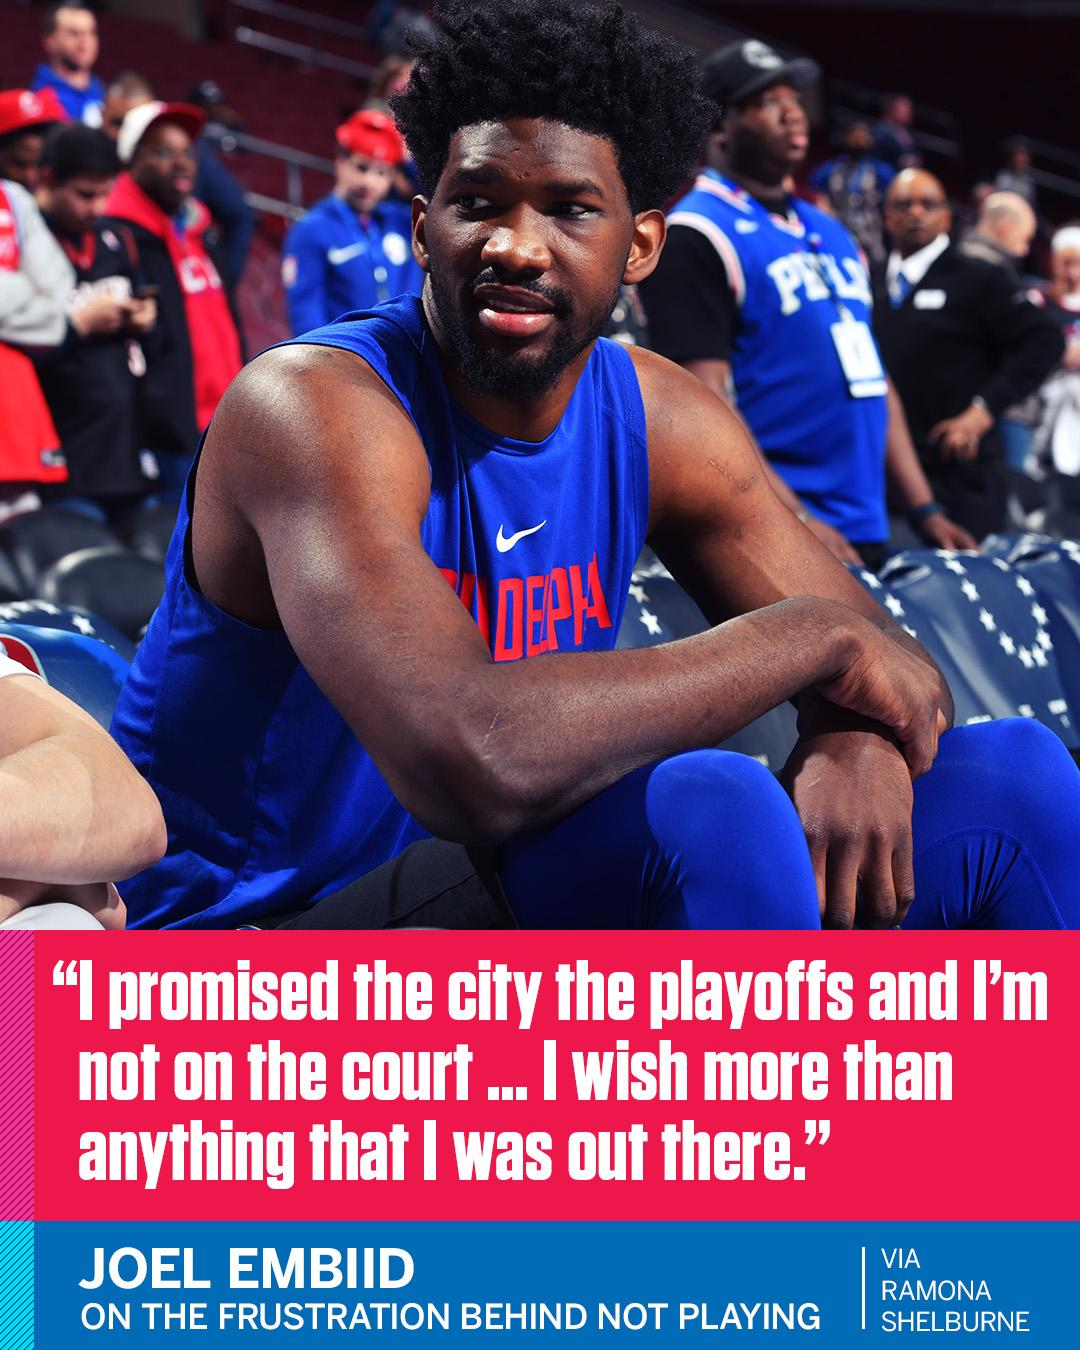 Joel Embiid explained to @ramonashelburne the frustration behind his Instagram rant. https://t.co/8zierJJrES